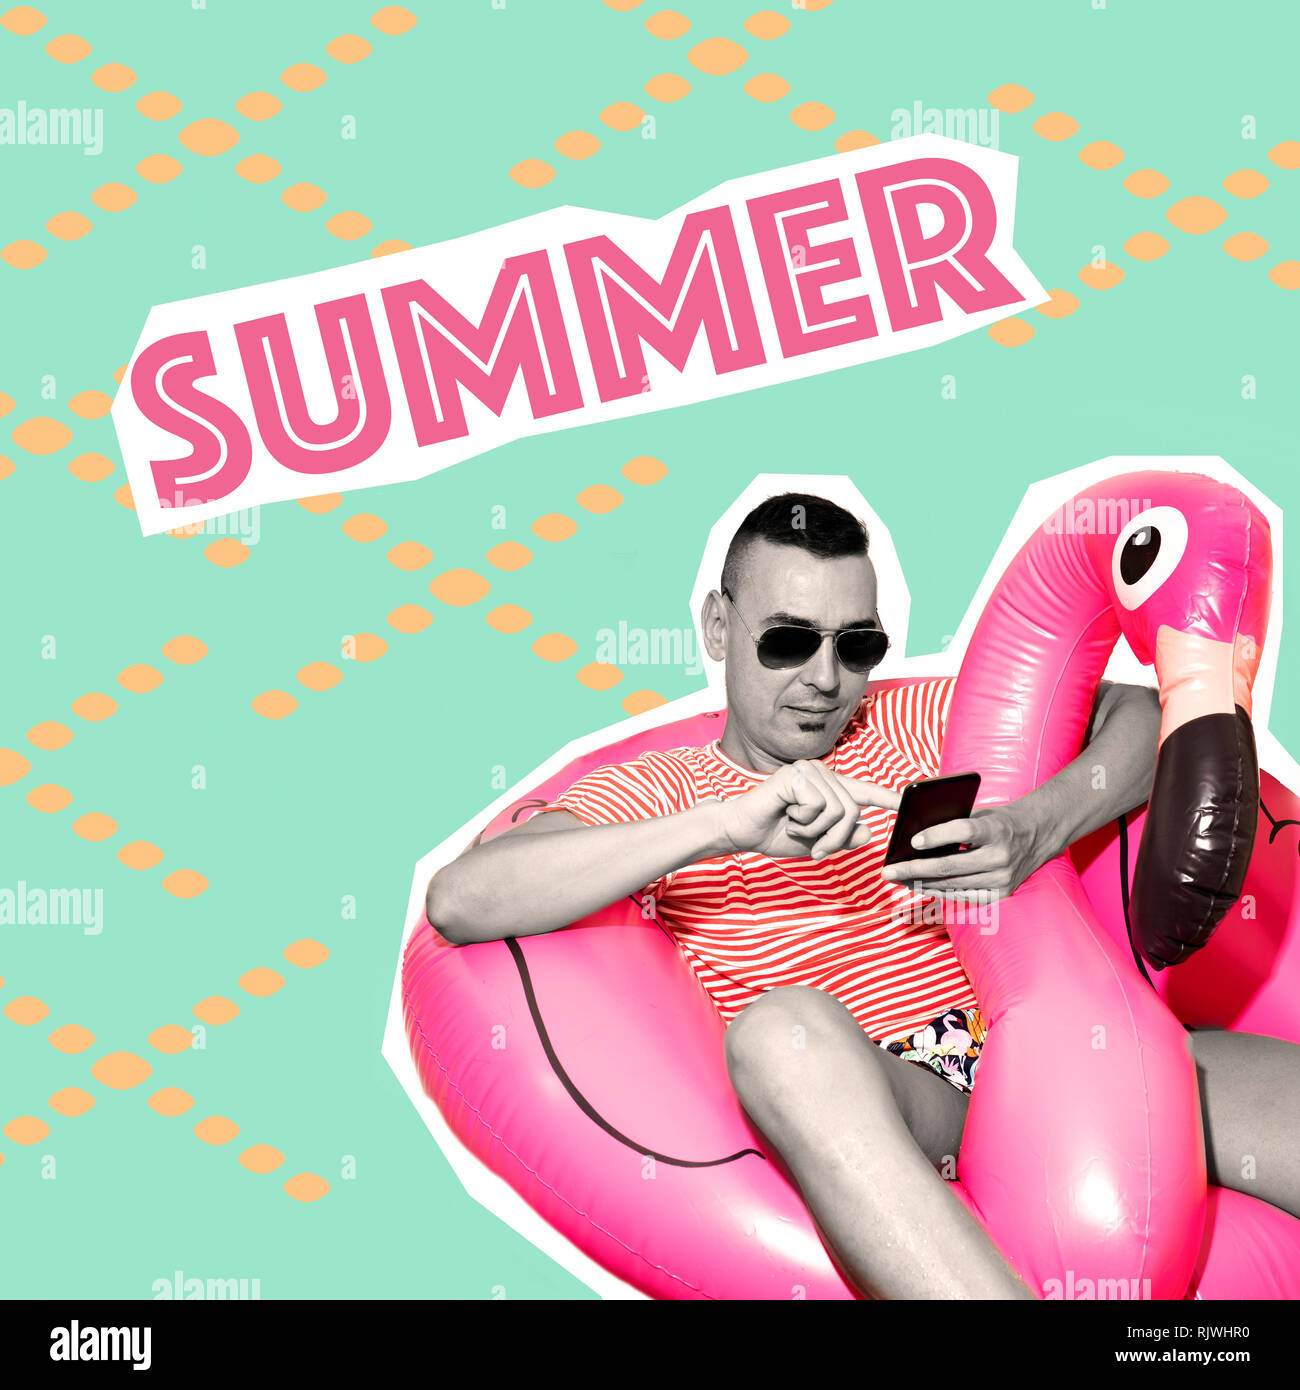 text summer, as a magazine cutout, and a young caucasian man wearing swim trunks resting on a flamingo-shaped swim ring, on a green background pattern - Stock Image